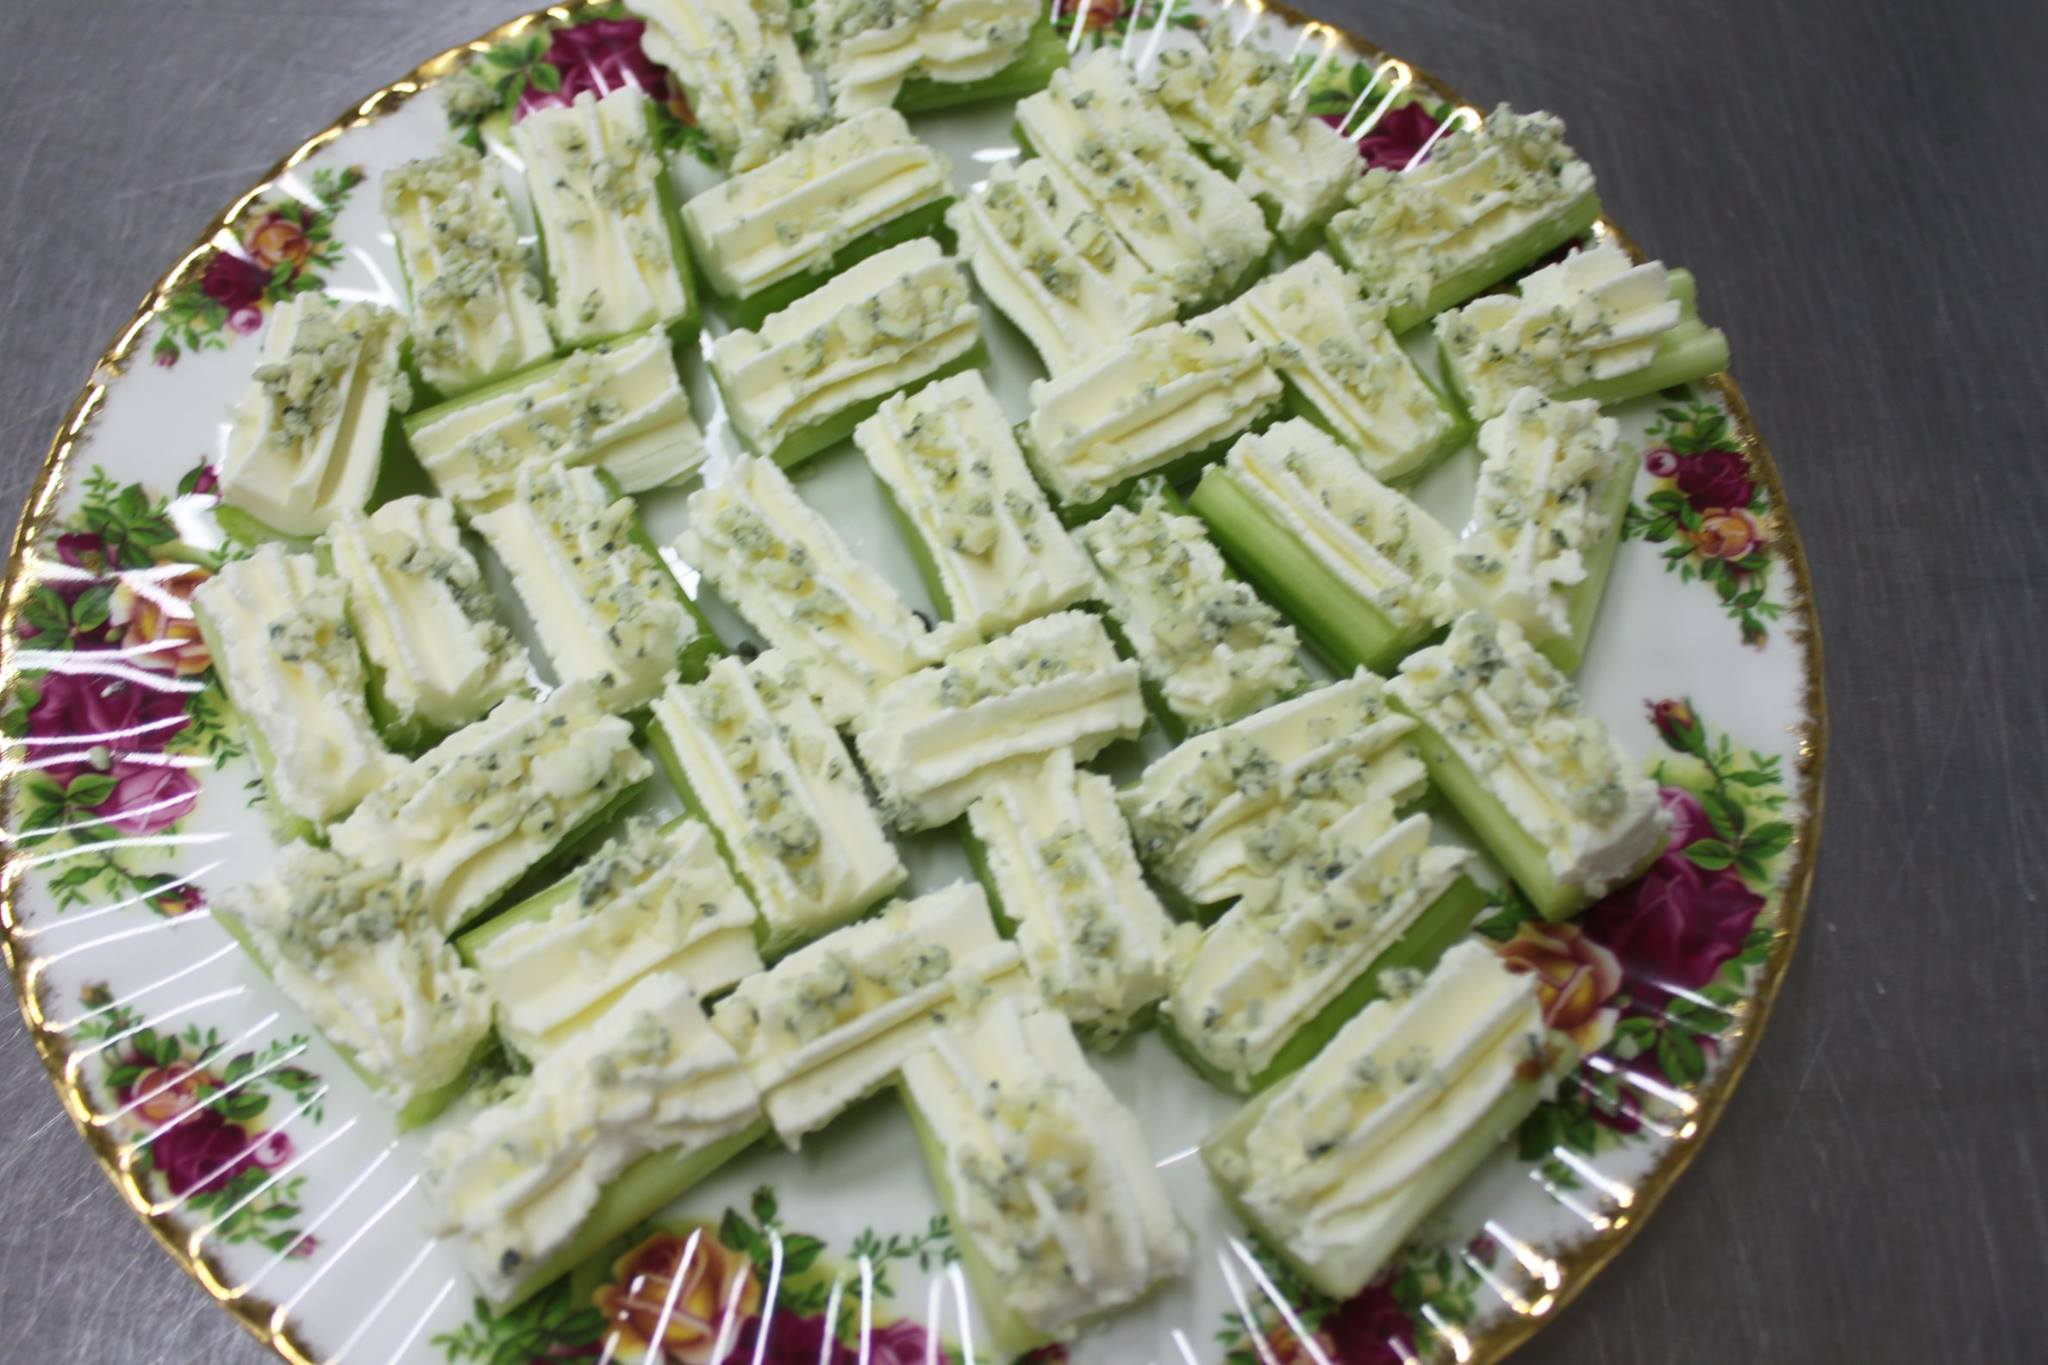 Celery sticks filled with cream cheese topped with Harrogate blue cheese canapes.